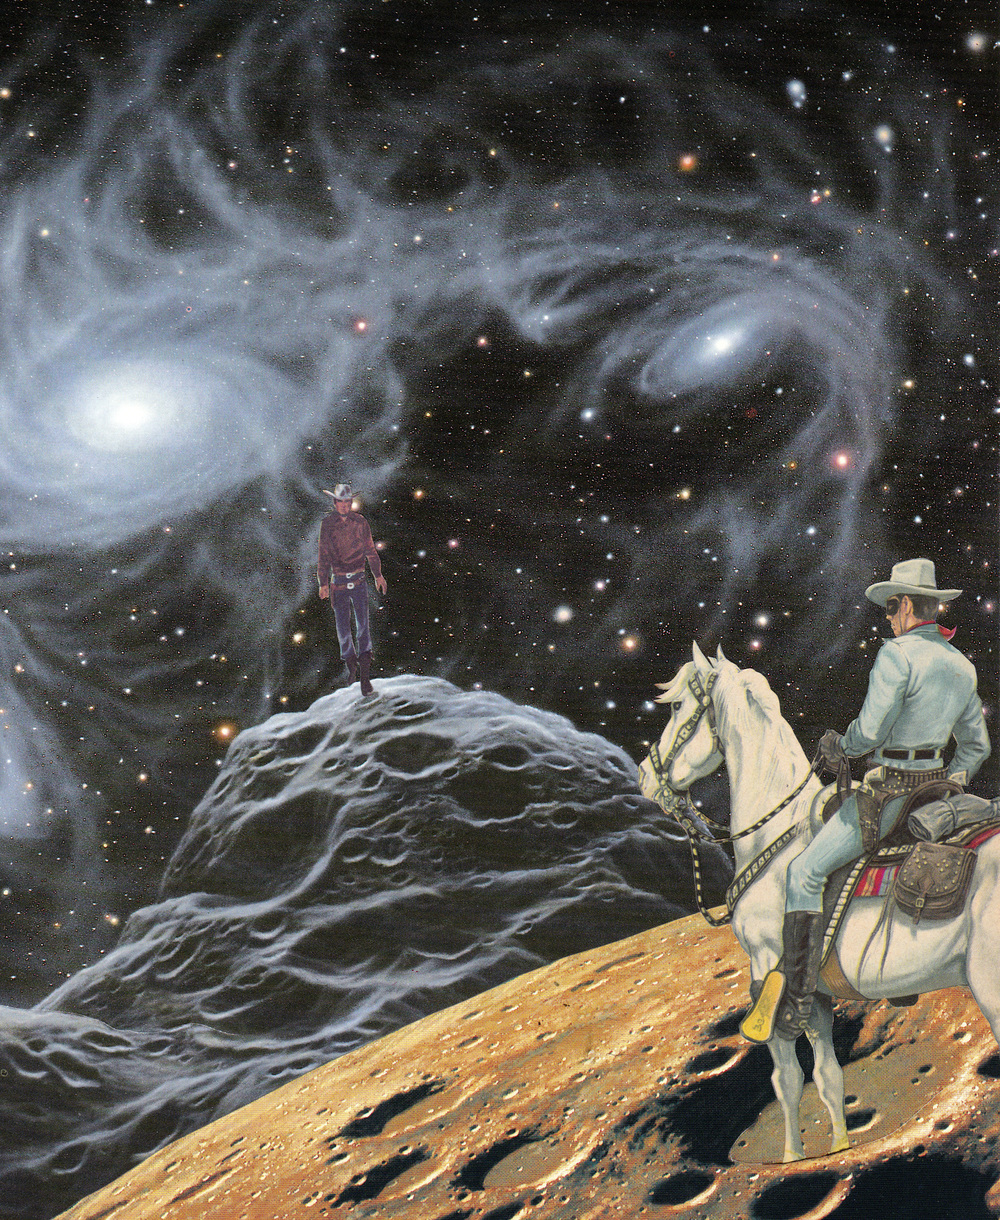 The Wild West Guide To The Galaxy 70.jpg